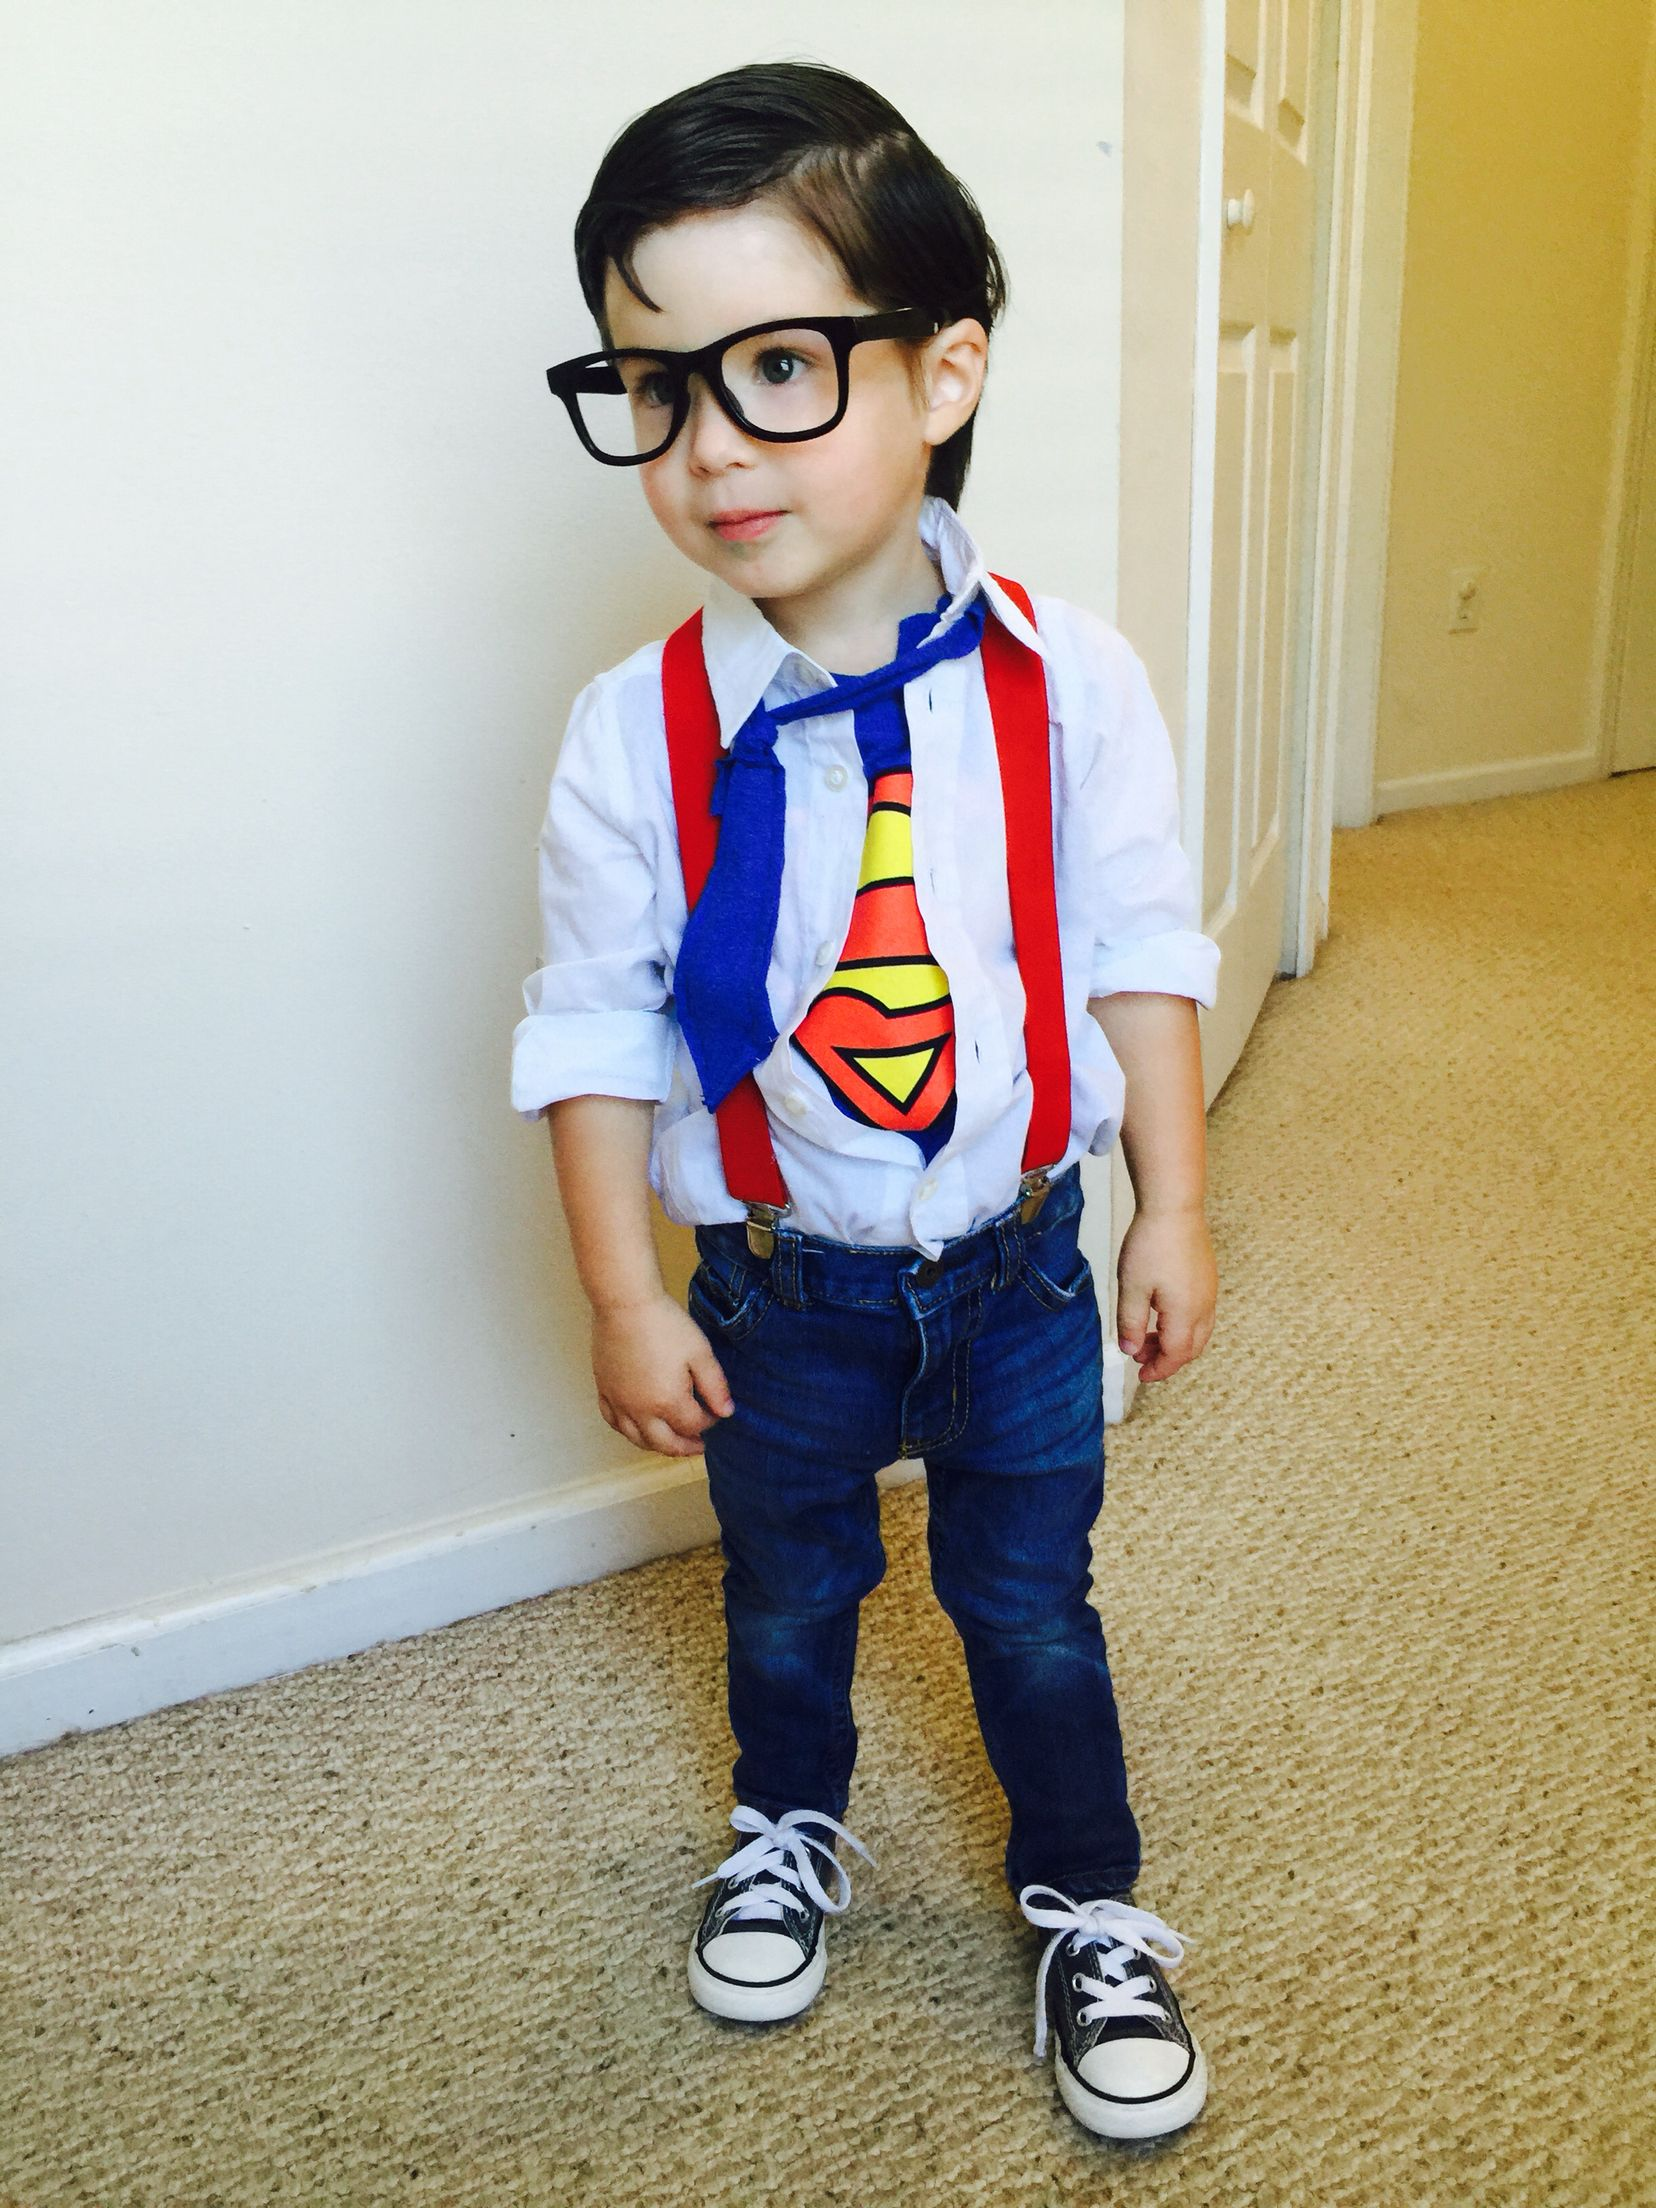 Toddler version of #clarkkent #toddlersuperman #superkid #toddlercostumeu2026  sc 1 st  Pinterest & Toddler version of #clarkkent #toddlersuperman #superkid ...